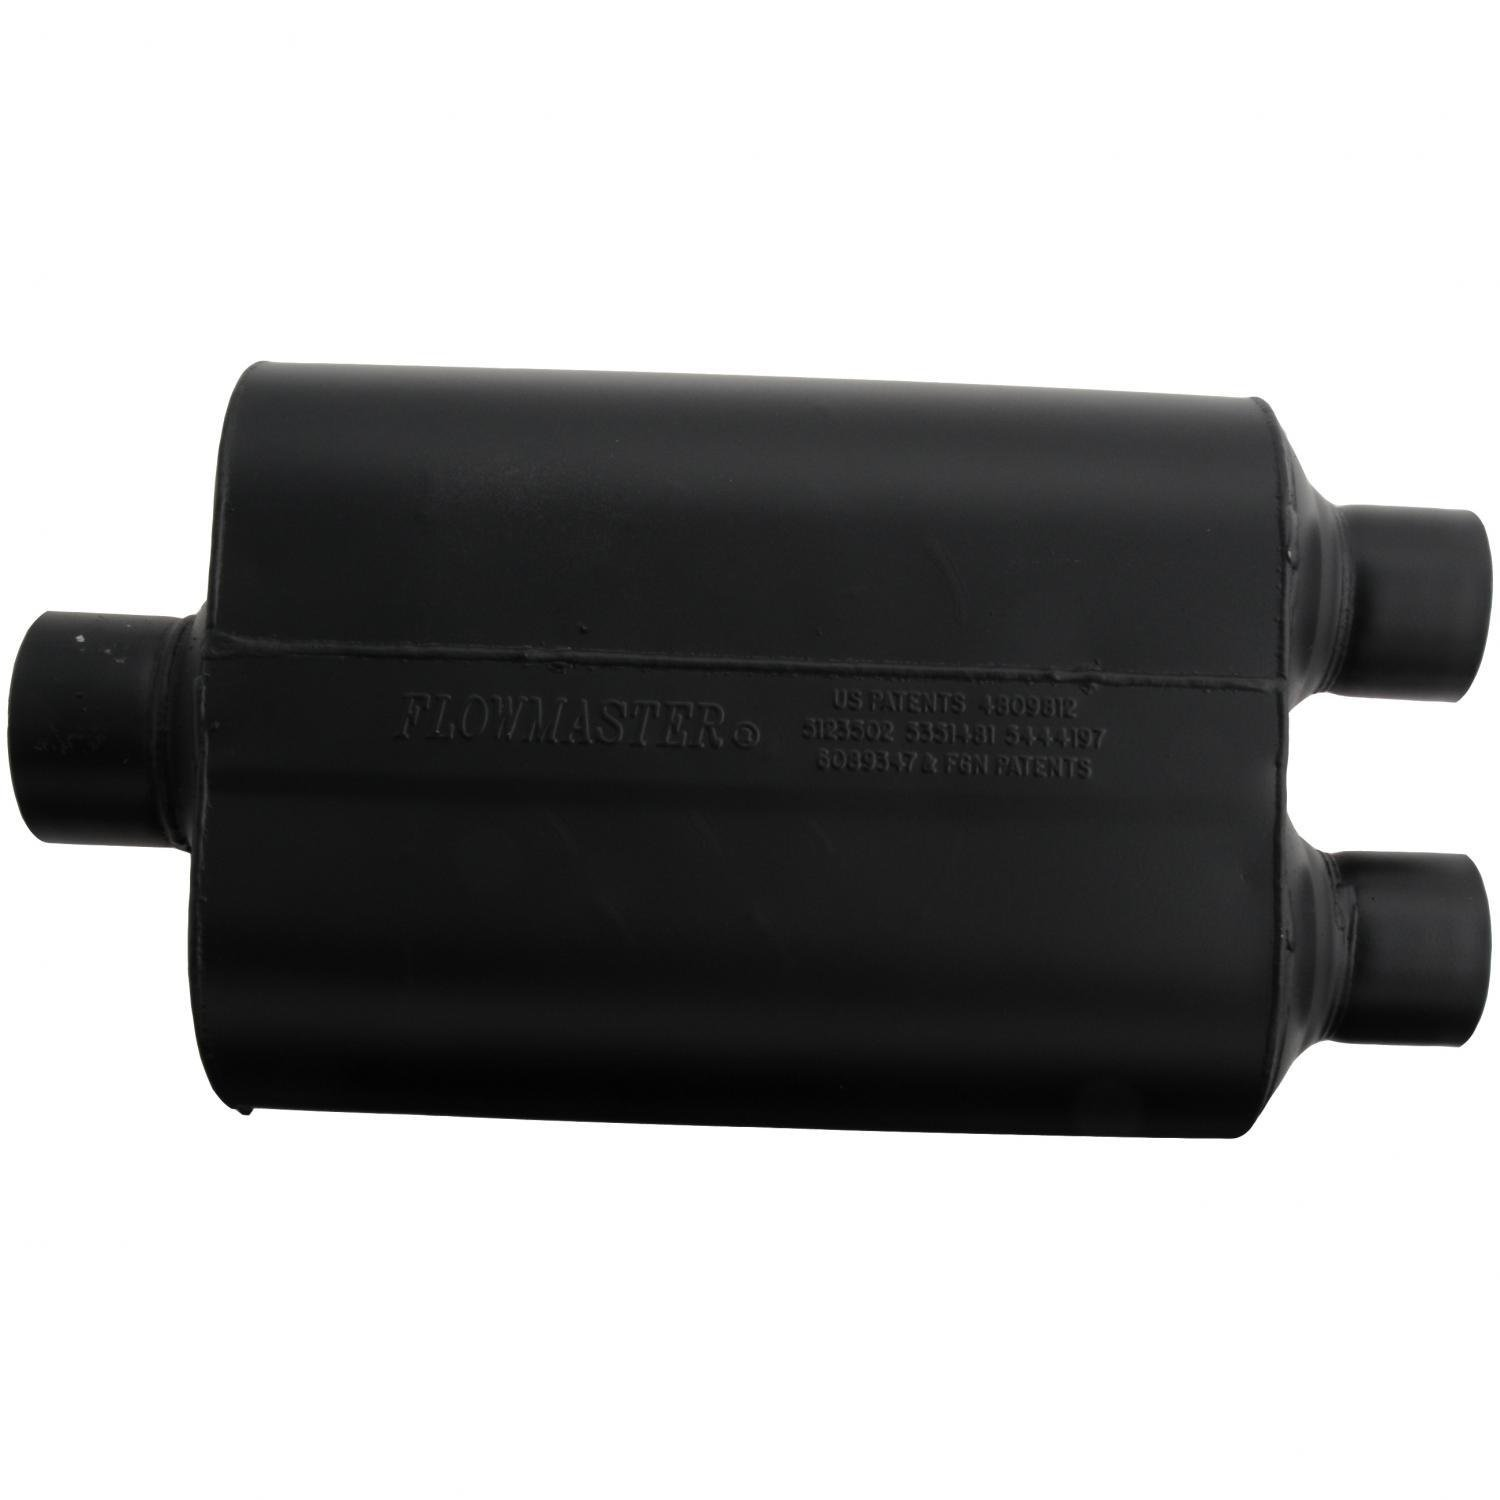 Flowmaster 9530452 Super 40 Muffler - 3.00 Center IN / 2.50 Dual OUT - Aggressive Sound by Flowmaster